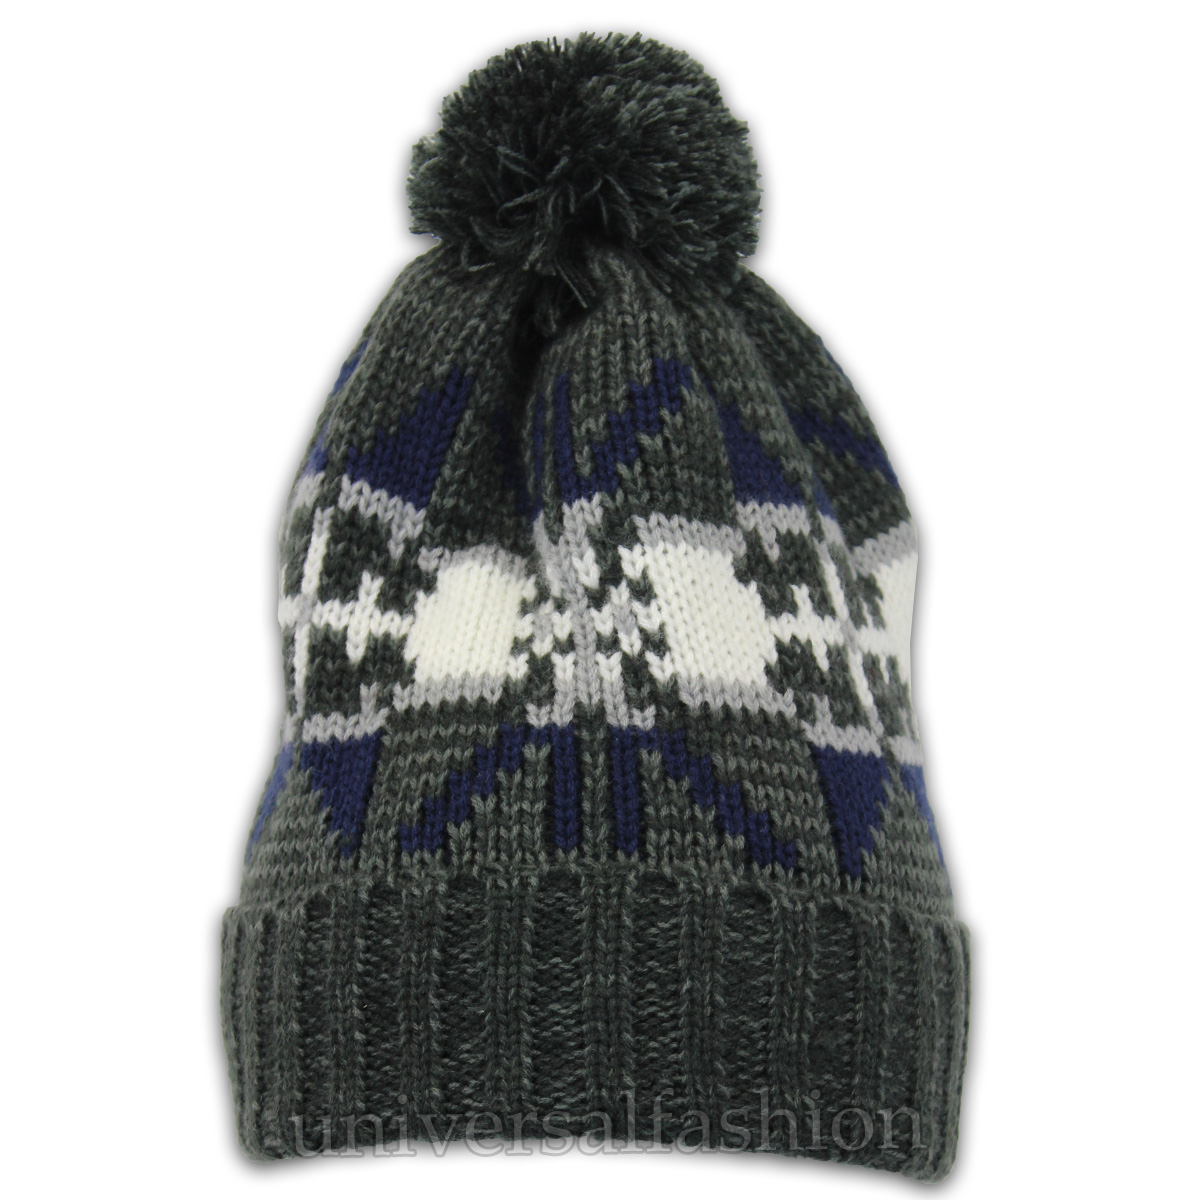 5286a319a1e ... Winter Reindeer Pom Pom Beanie Hat Charcoal - Pom3 One Size. About this  product. Picture 1 of 2  Picture 2 of 2